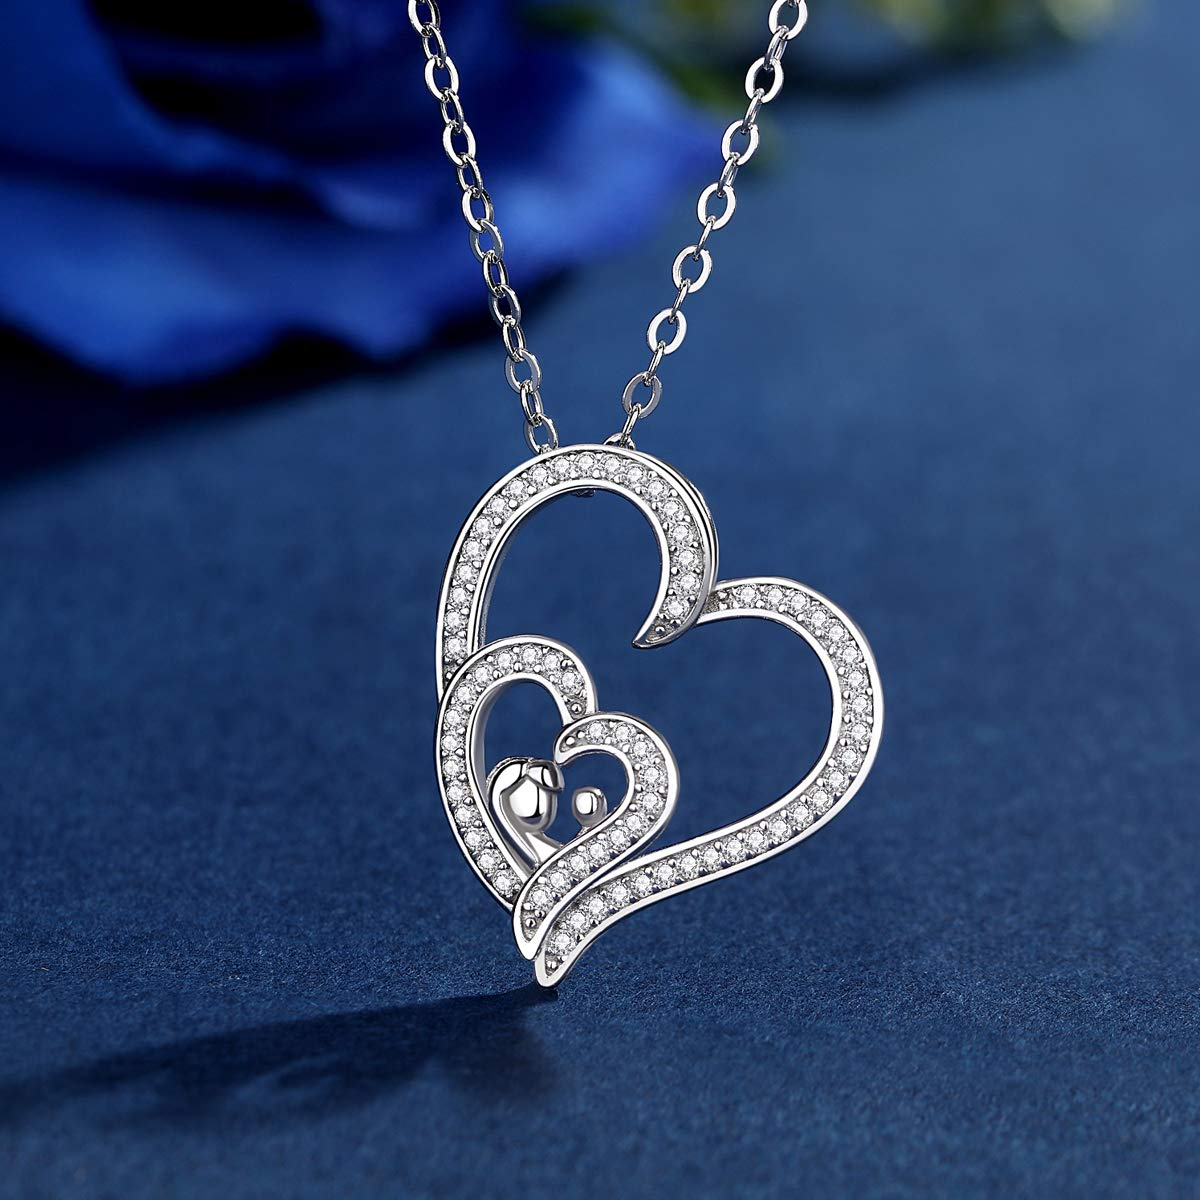 Gift for Mom 925 Sterling Silver Heat Pendant Necklace Family Love Mom and Baby in Heart Two Tone CELESTIA Jewelry for Women